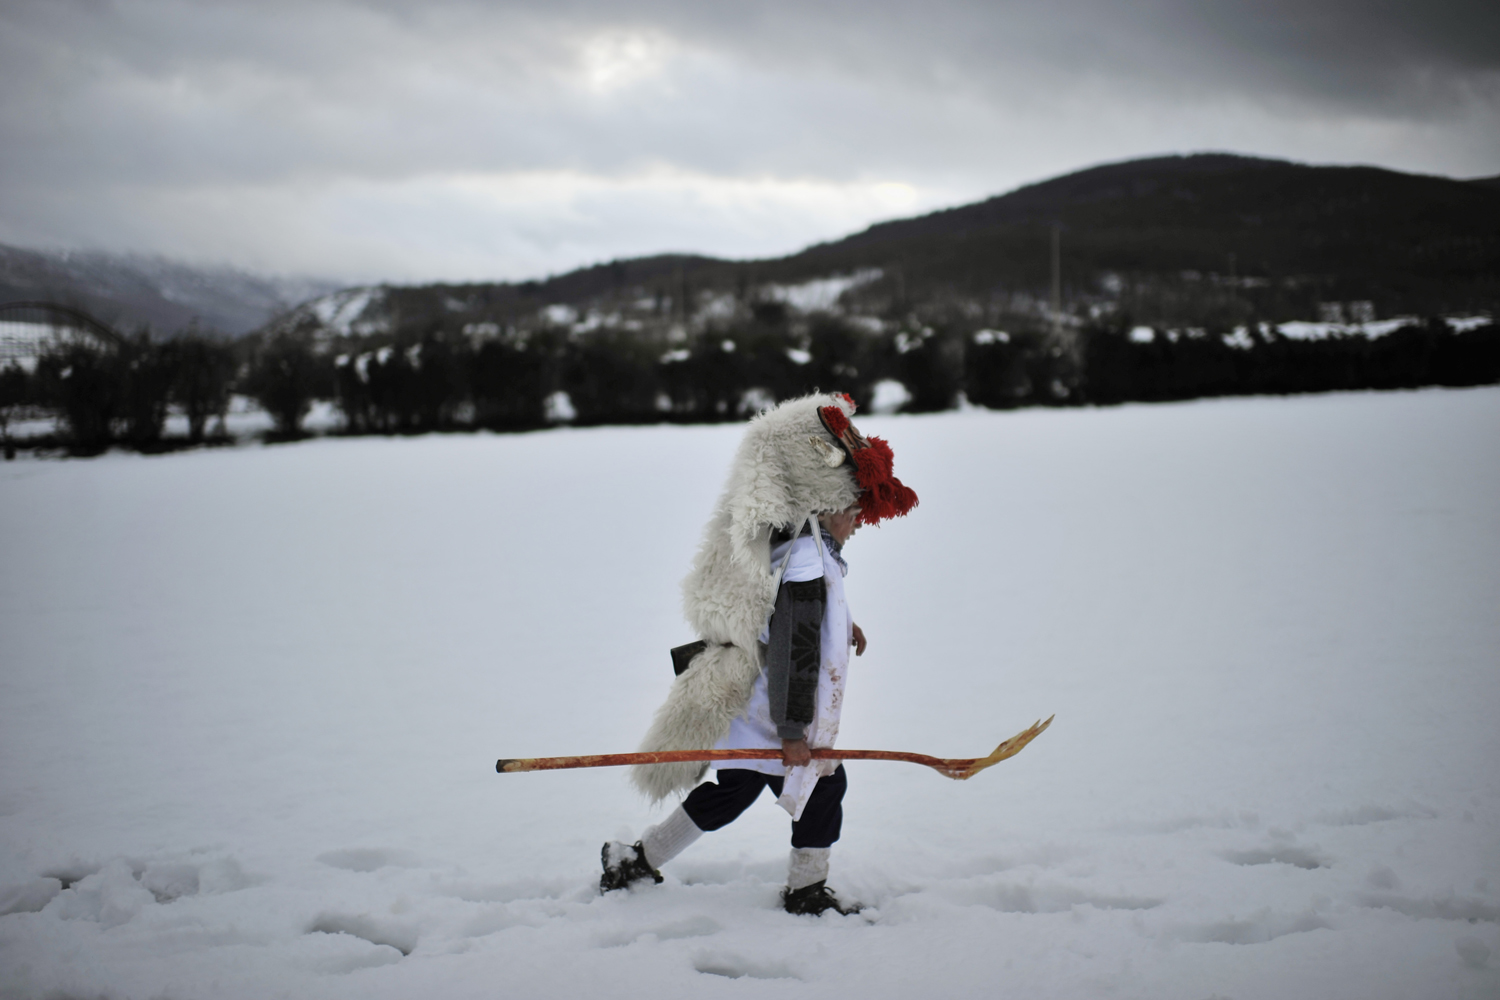 Feb. 12, 2013. A boy dressed up as Momotxorro, a local mythical animal, walks in the snow during carnival celebrations in Alsasua, northern Spain.